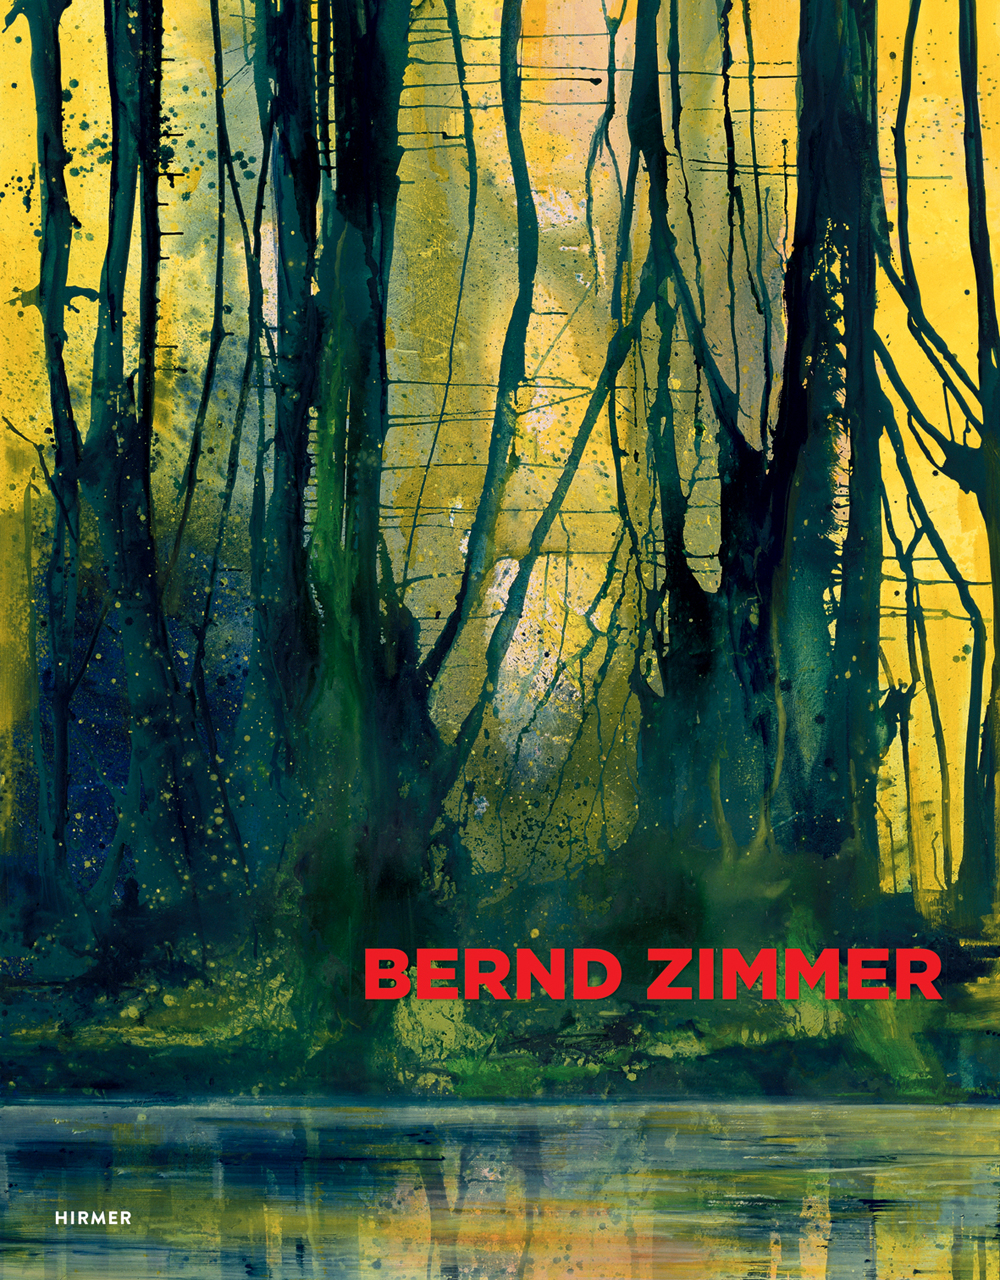 Bernd Zimmer: Everything Flows. Painting